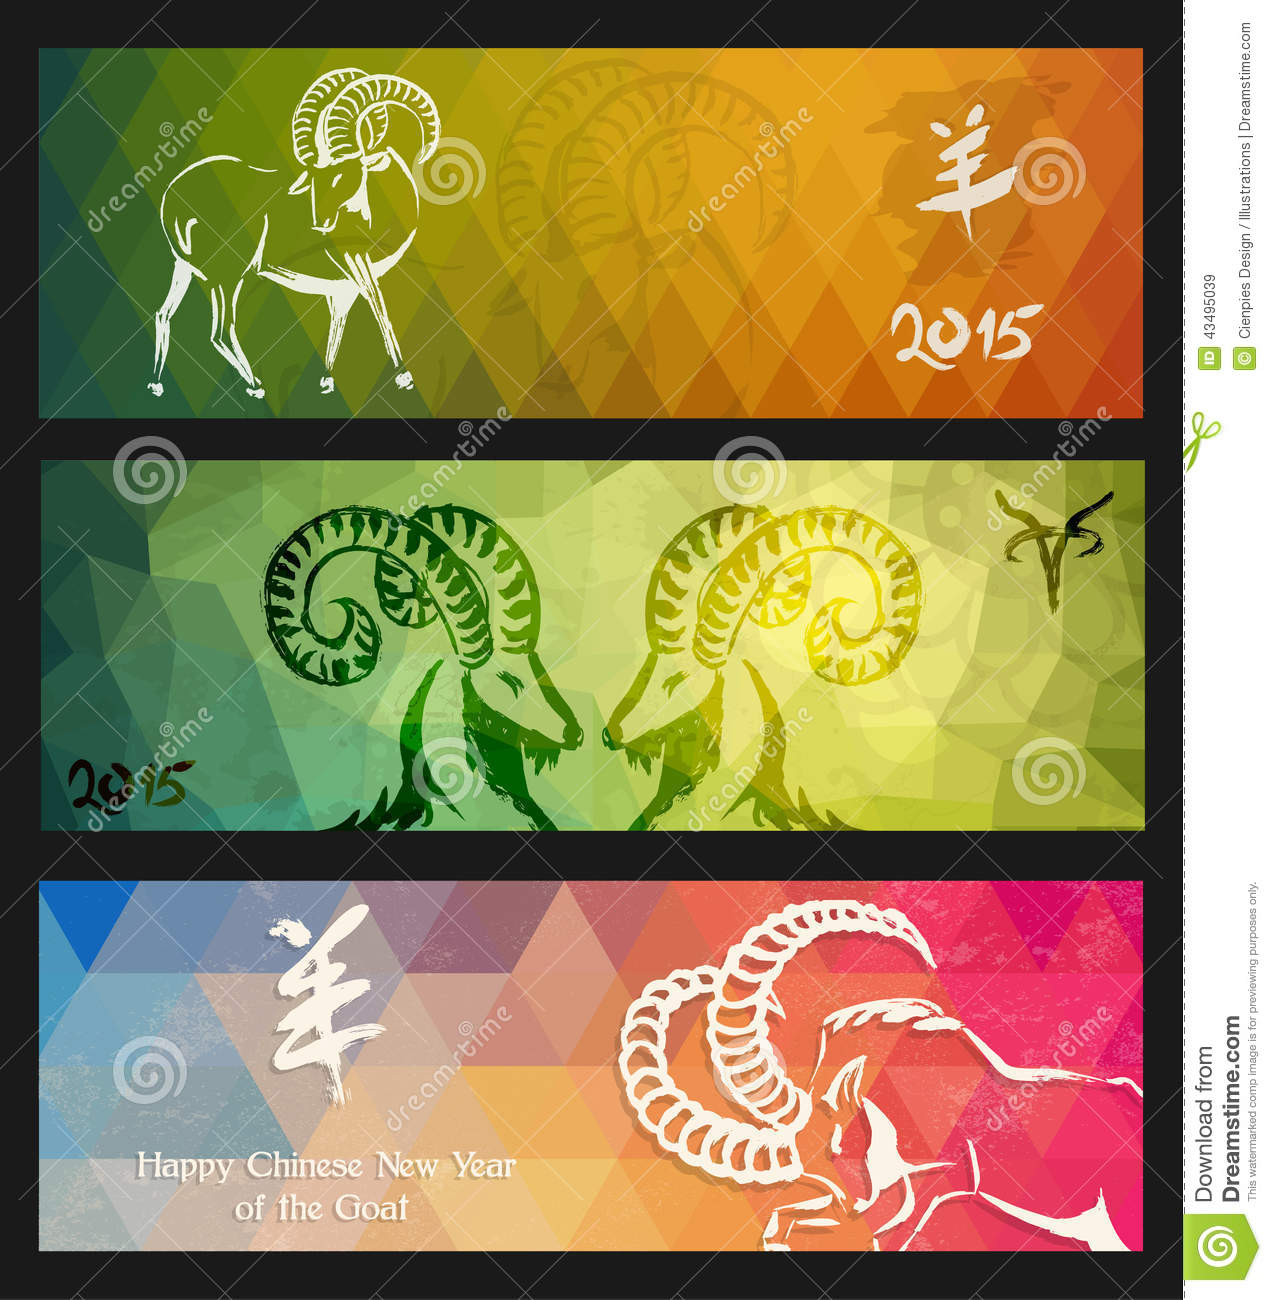 New Year Of The Goat 2015 Vintage Banners Set Stock Vector